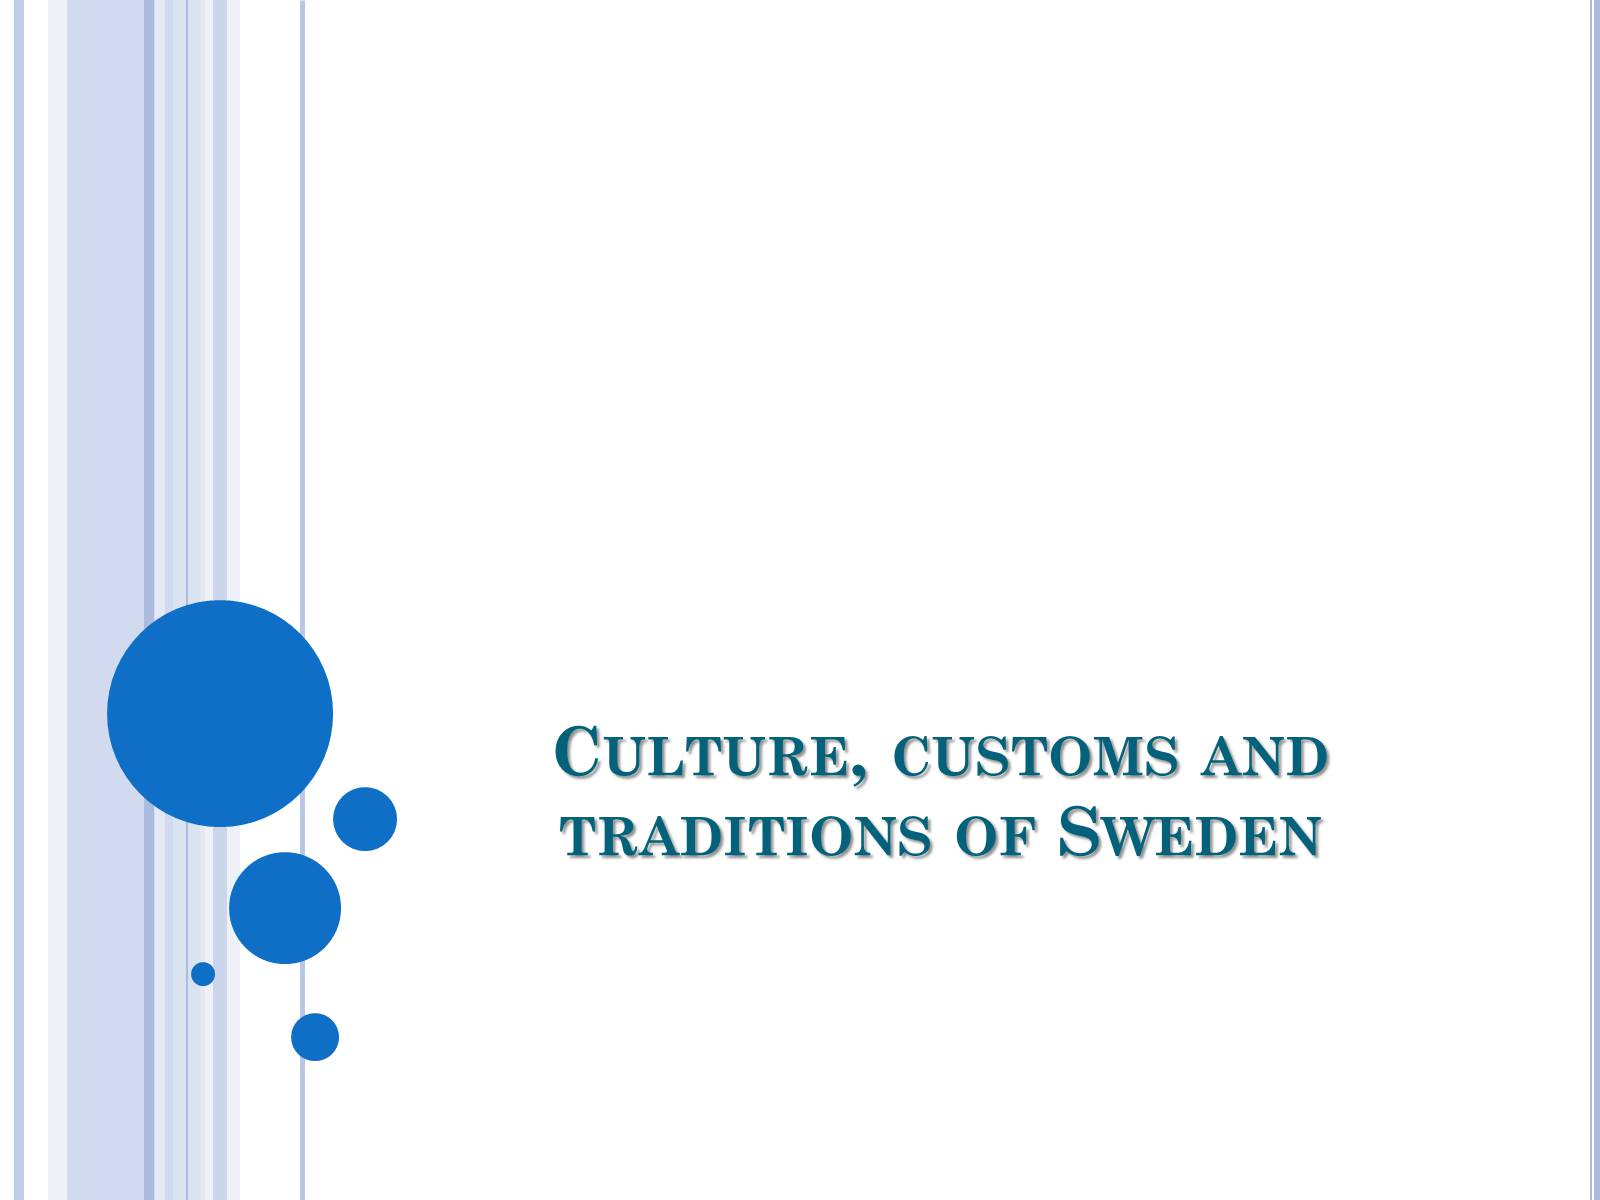 Презентація на тему «Culture, customs and traditions of Sweden»